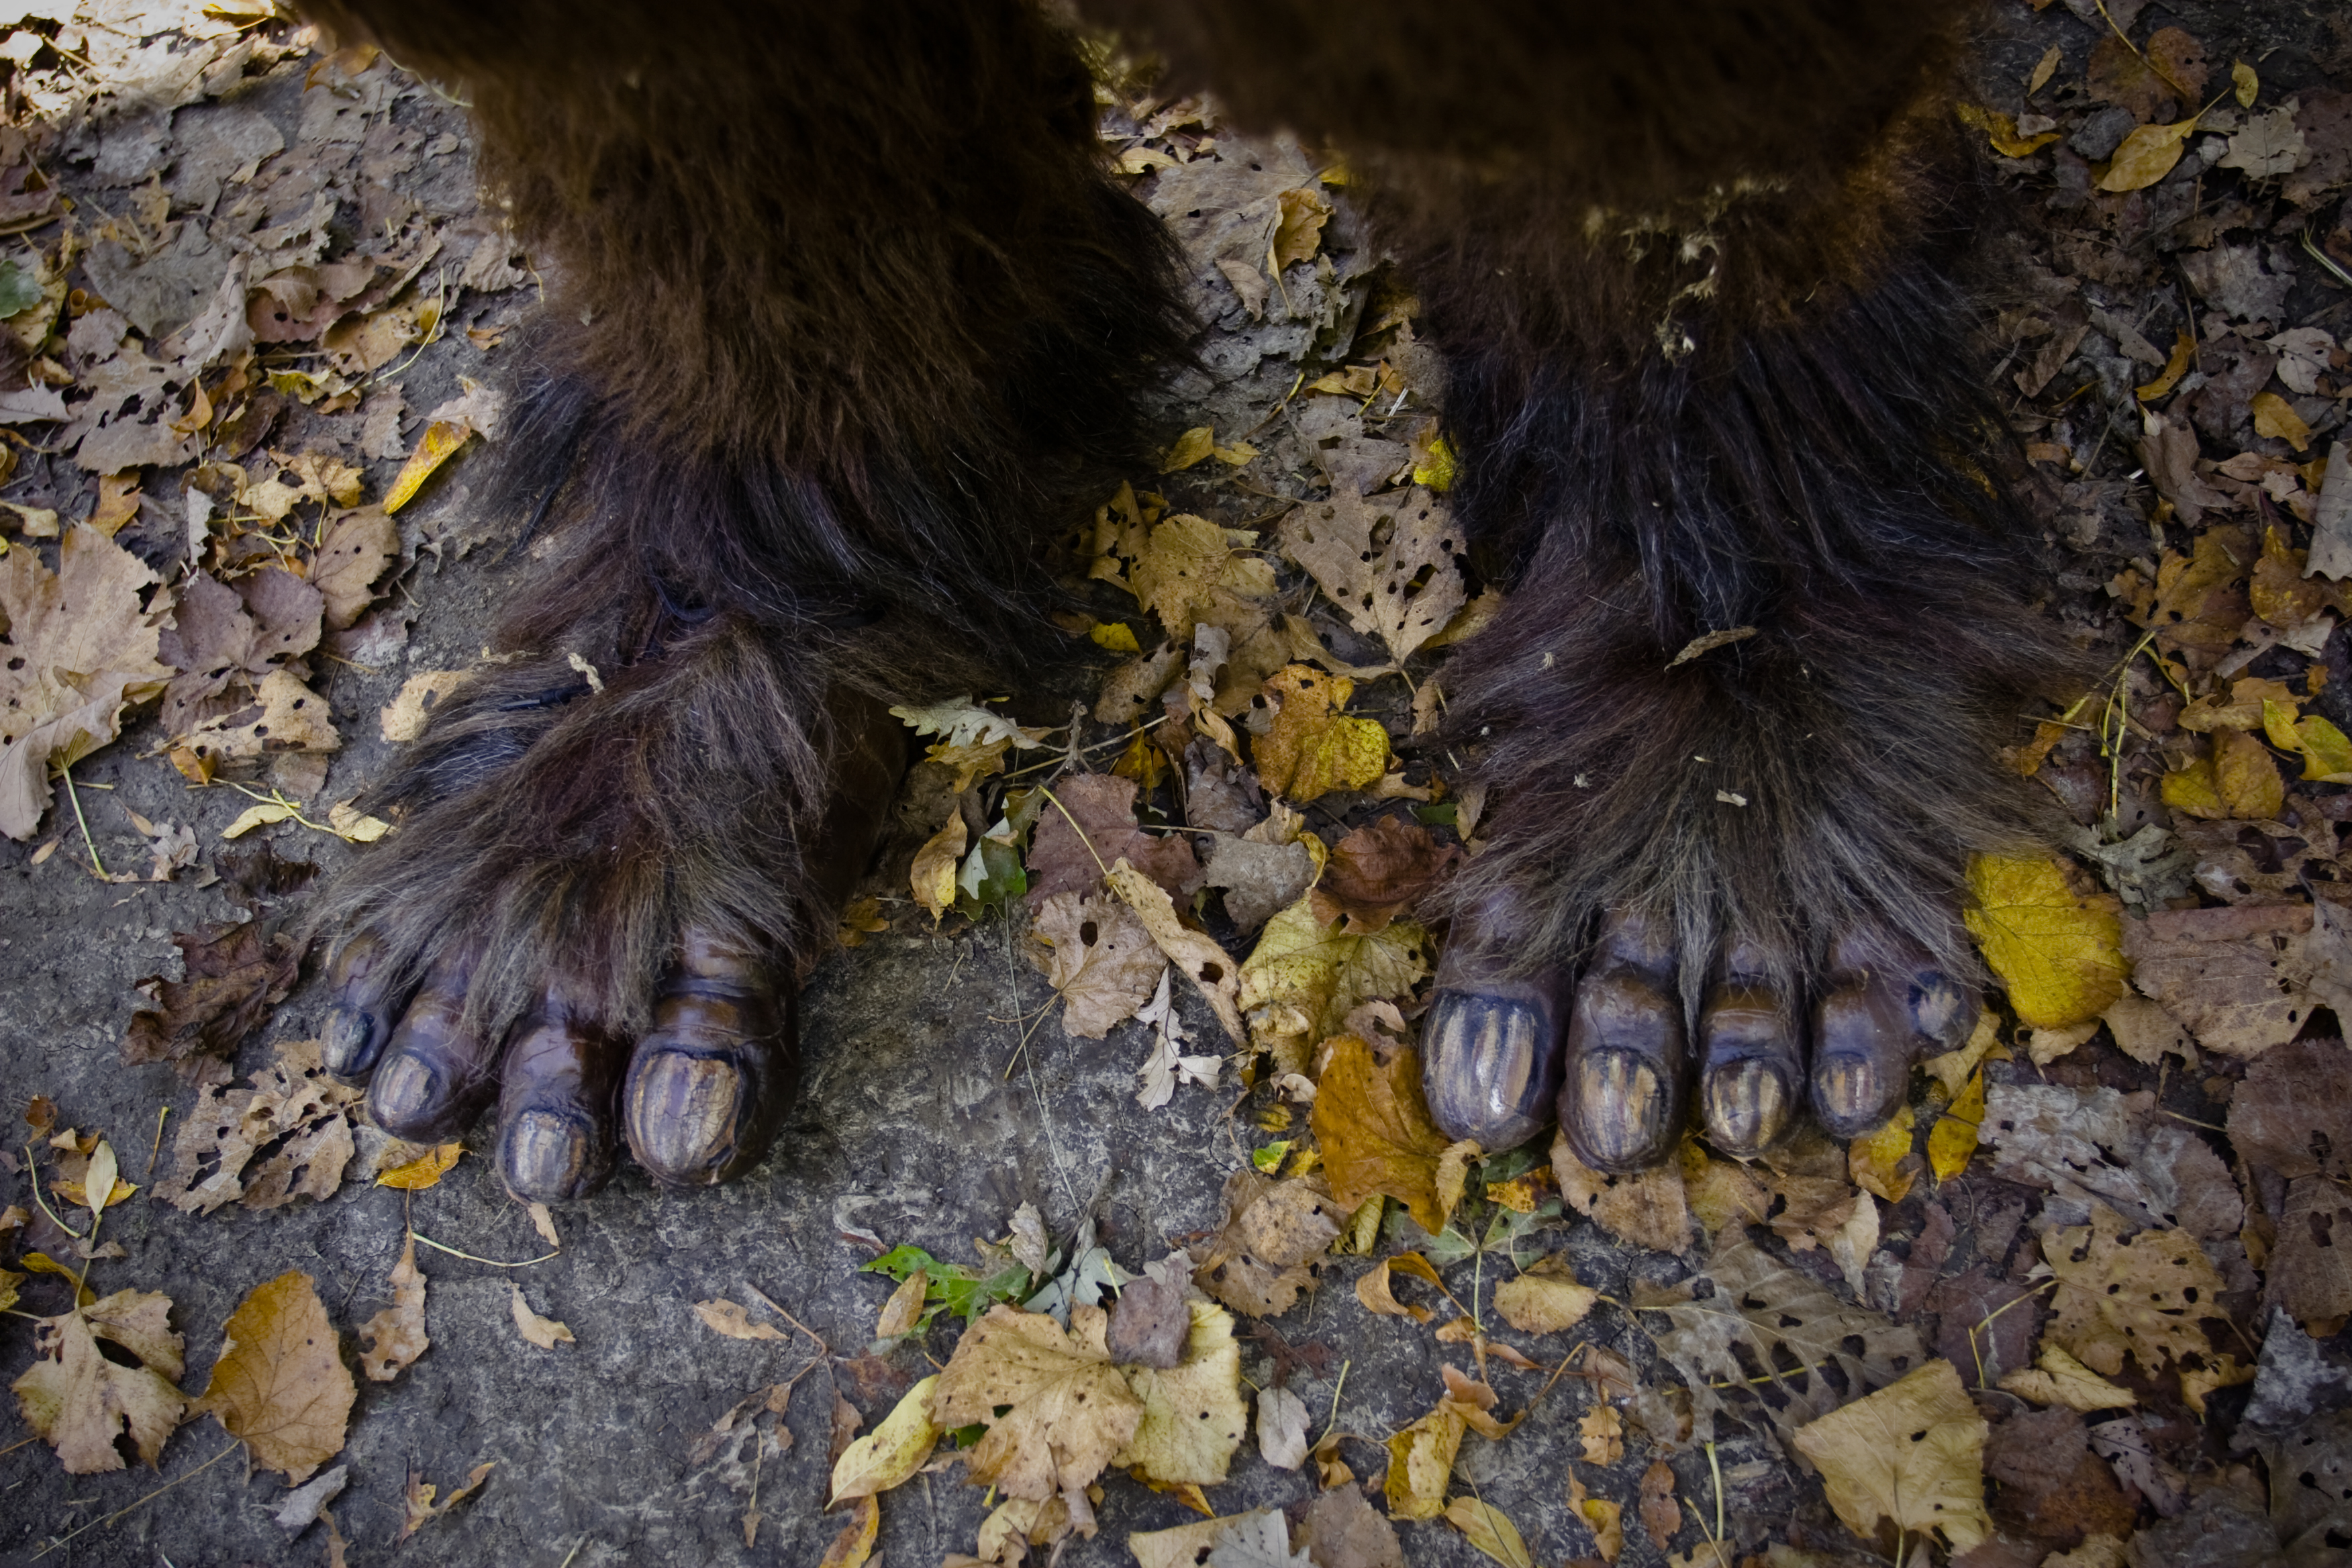 Bigfoot Evidence: The Sasquatch and the Great Apes